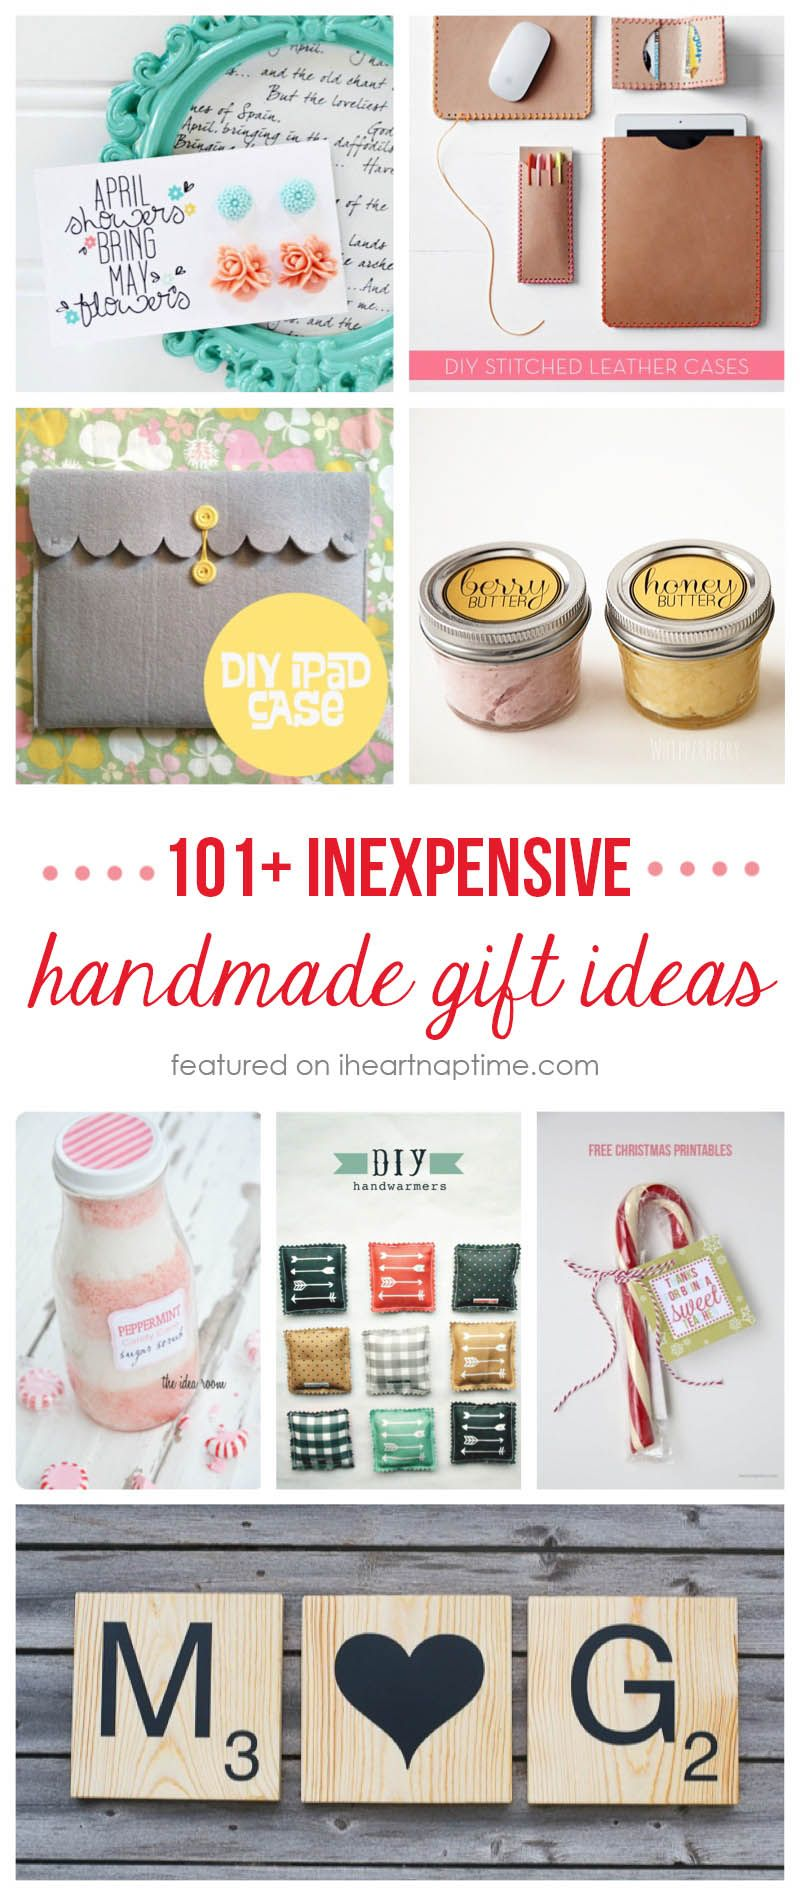 inexpensive handmade christmas gifts on iheartnaptime